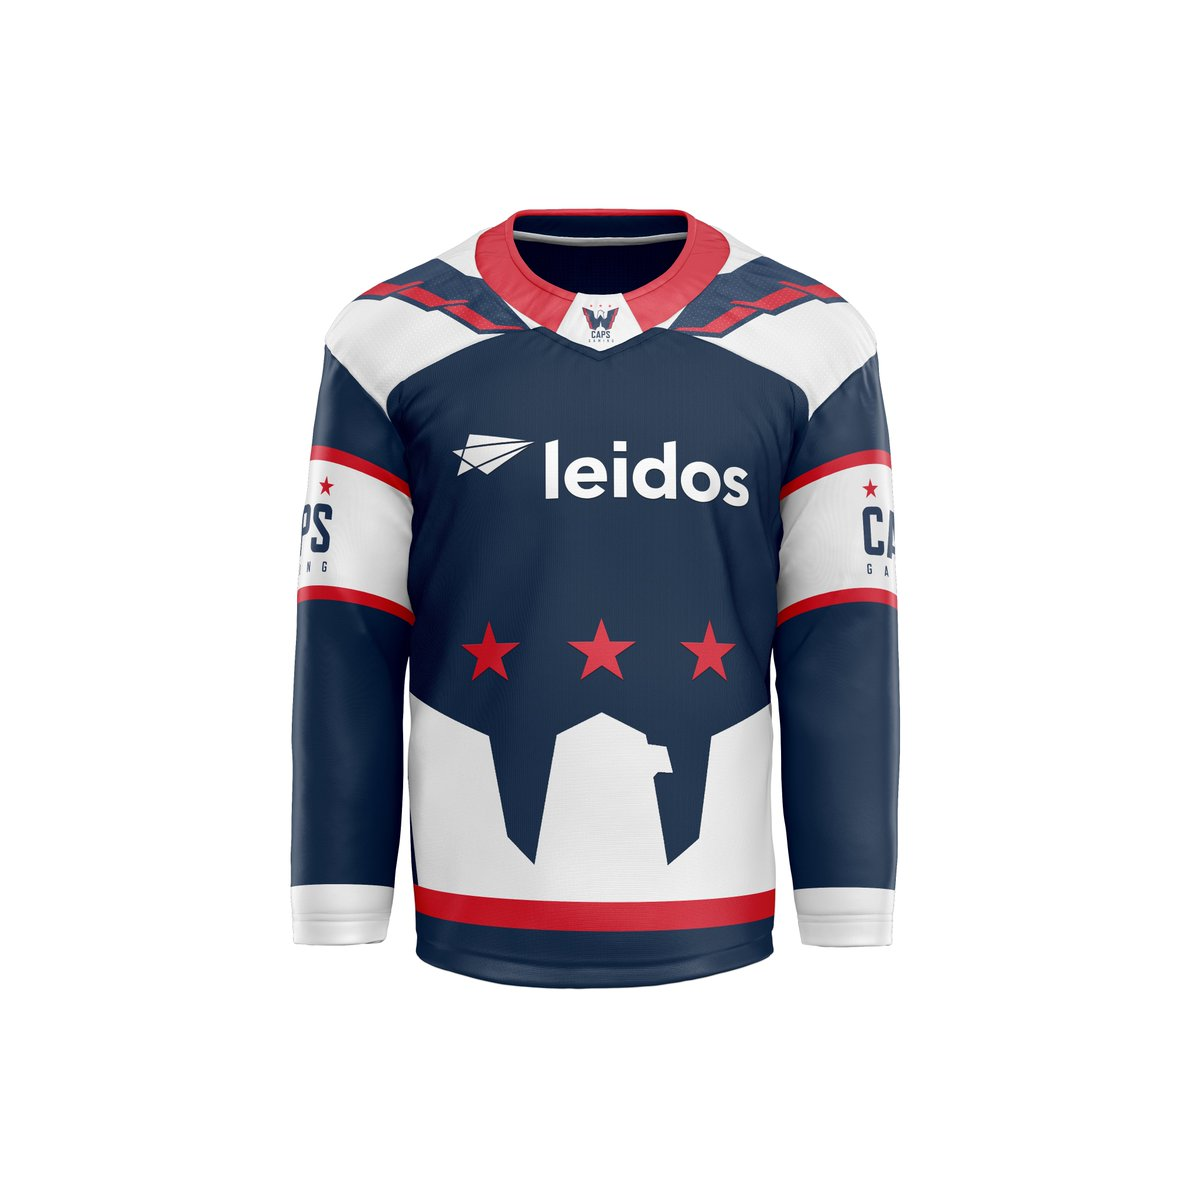 Been messing around with some @capsgaming jersey concepts. the first one I went for a more traditional look, but for the other I wanted to be a little more creative. I hope you guys enjoy, and let me know what you think in the comments. #ALLCAPS @LeidosInc